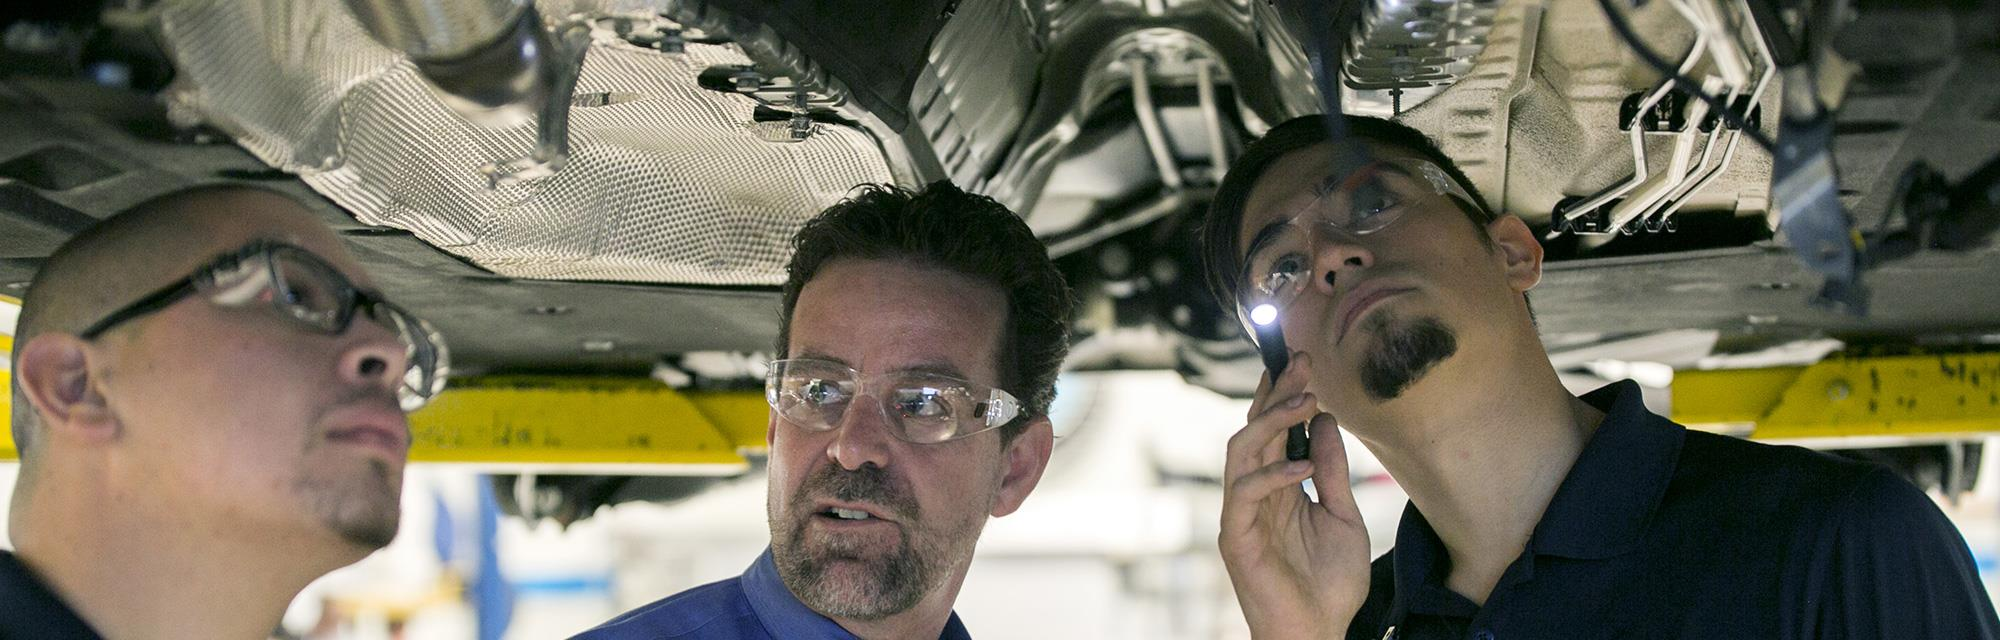 Instructor and students working on an automobile.